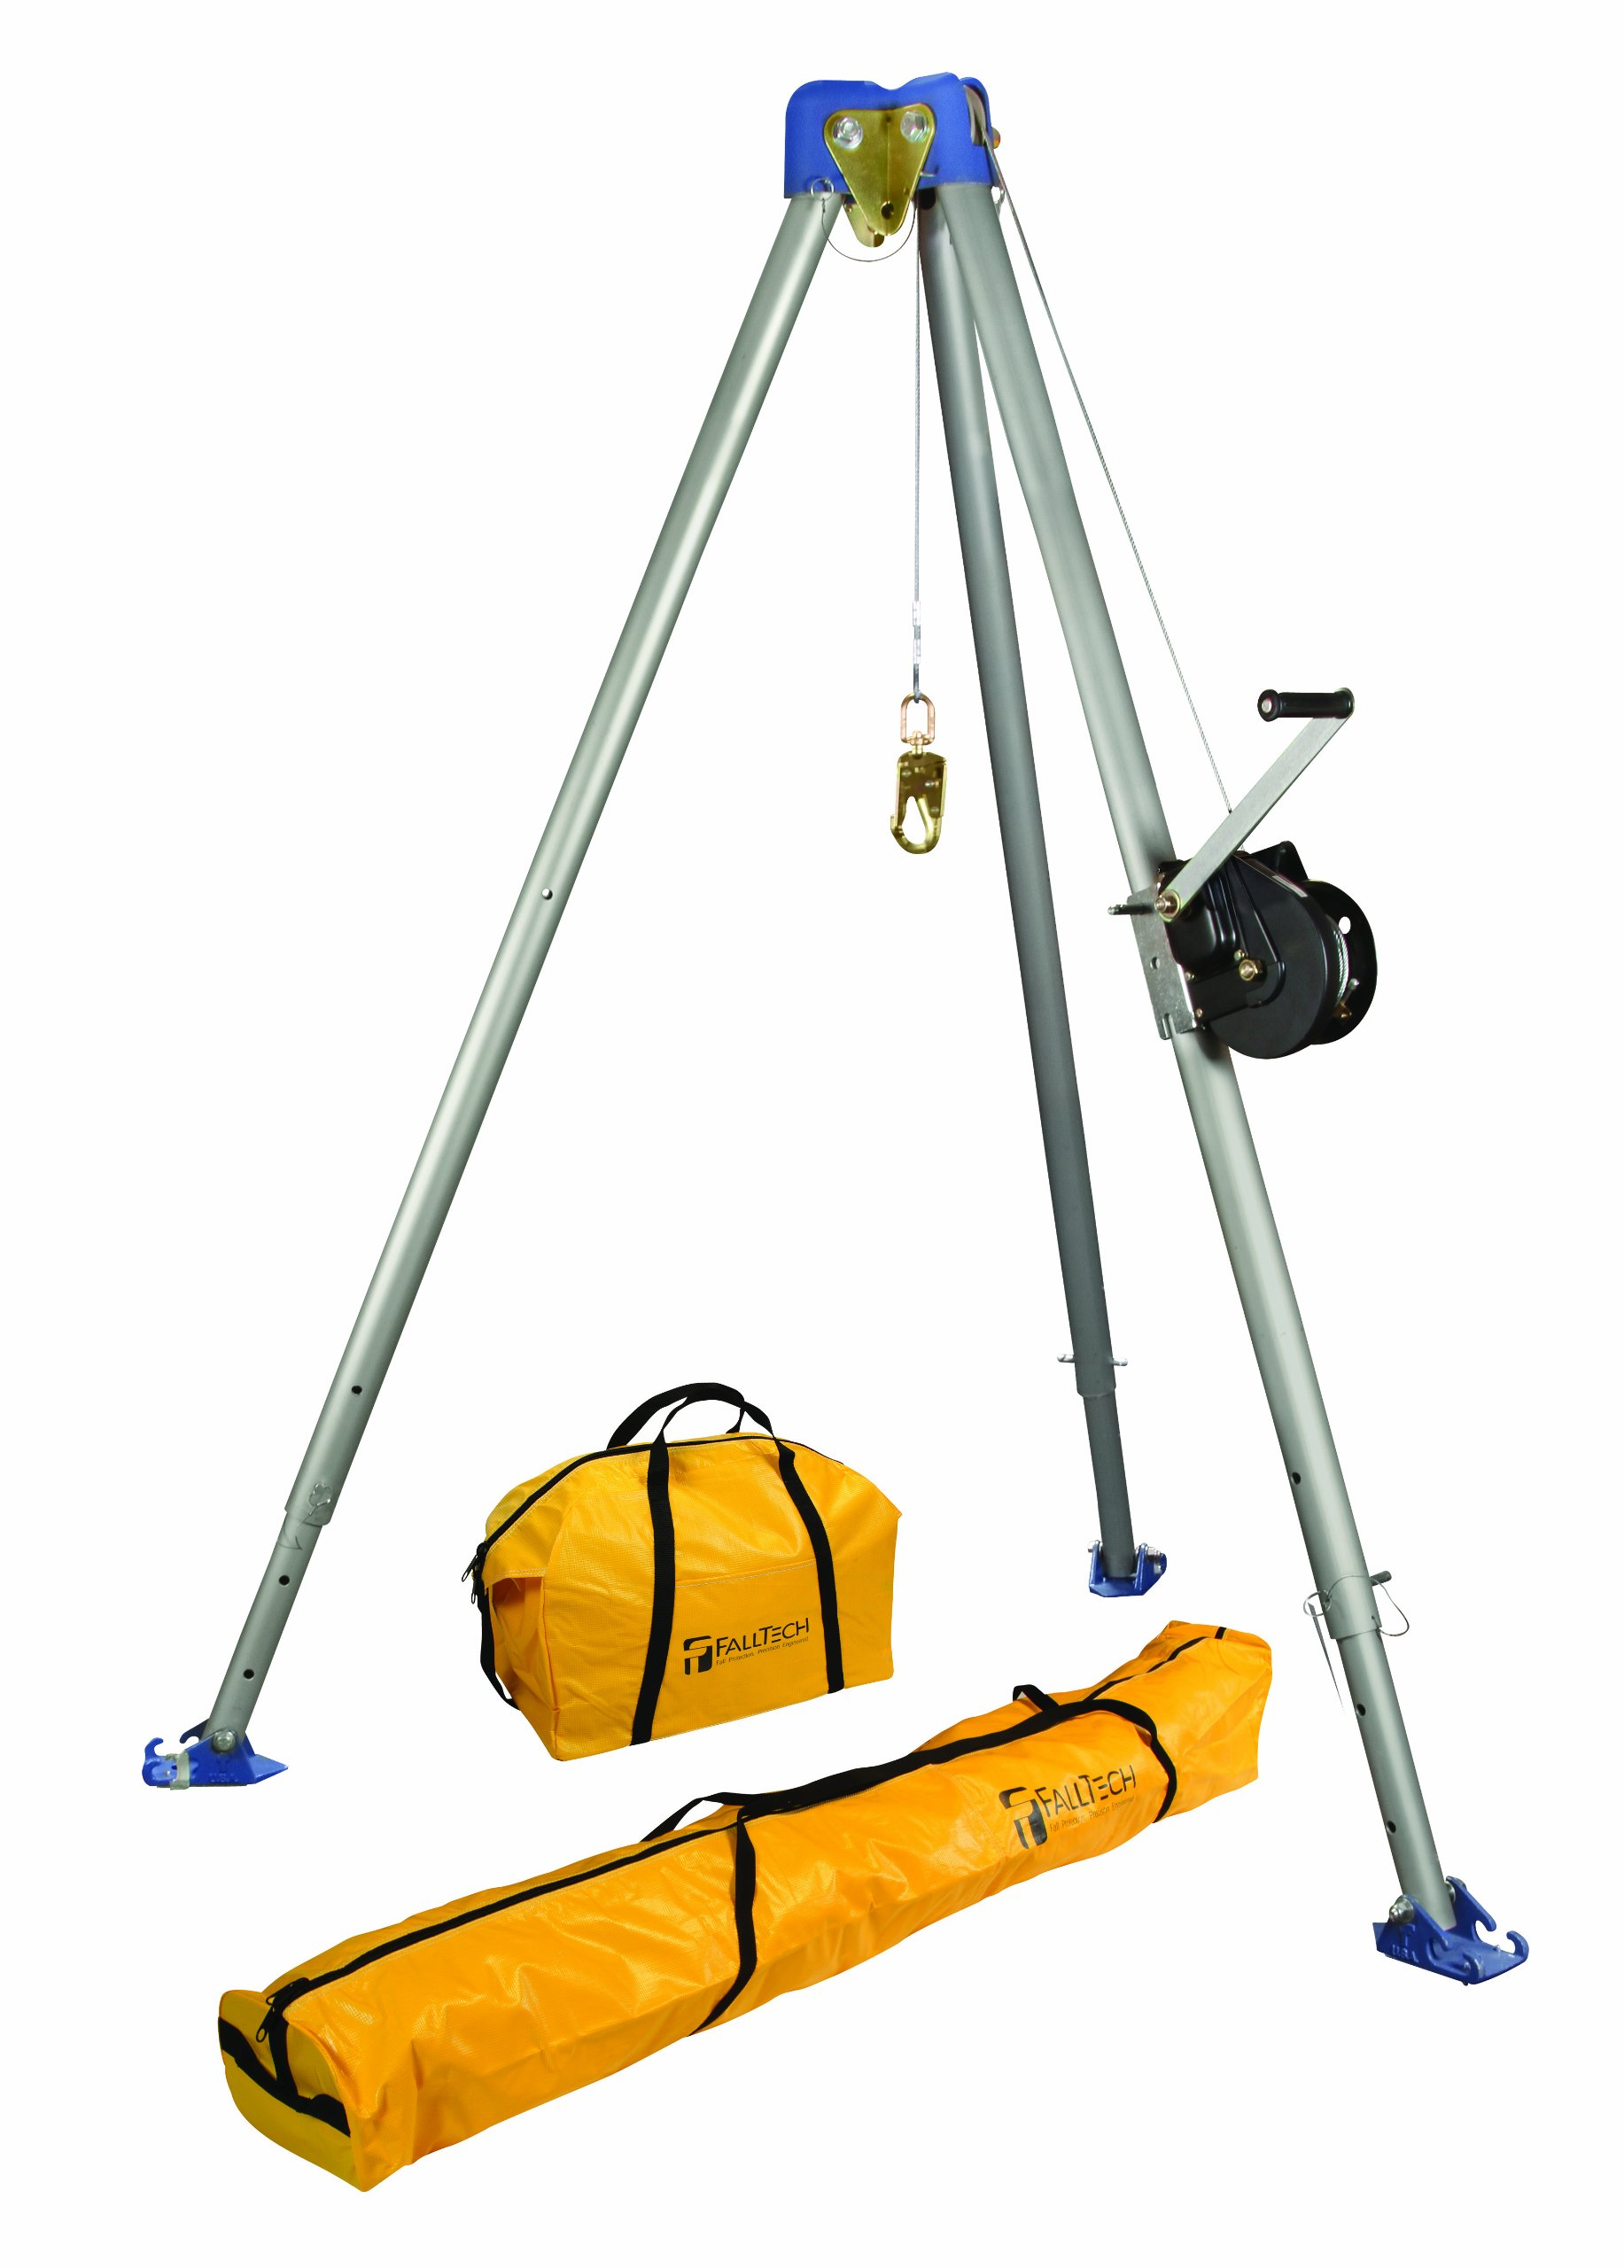 FallTech 7505 Confined Space Tripod Kit - Tripod Kit with 7275 Tripod, 7290 Winch, 7280 and 7282 Storage Bags, Galvanized Cable, Natural by FallTech